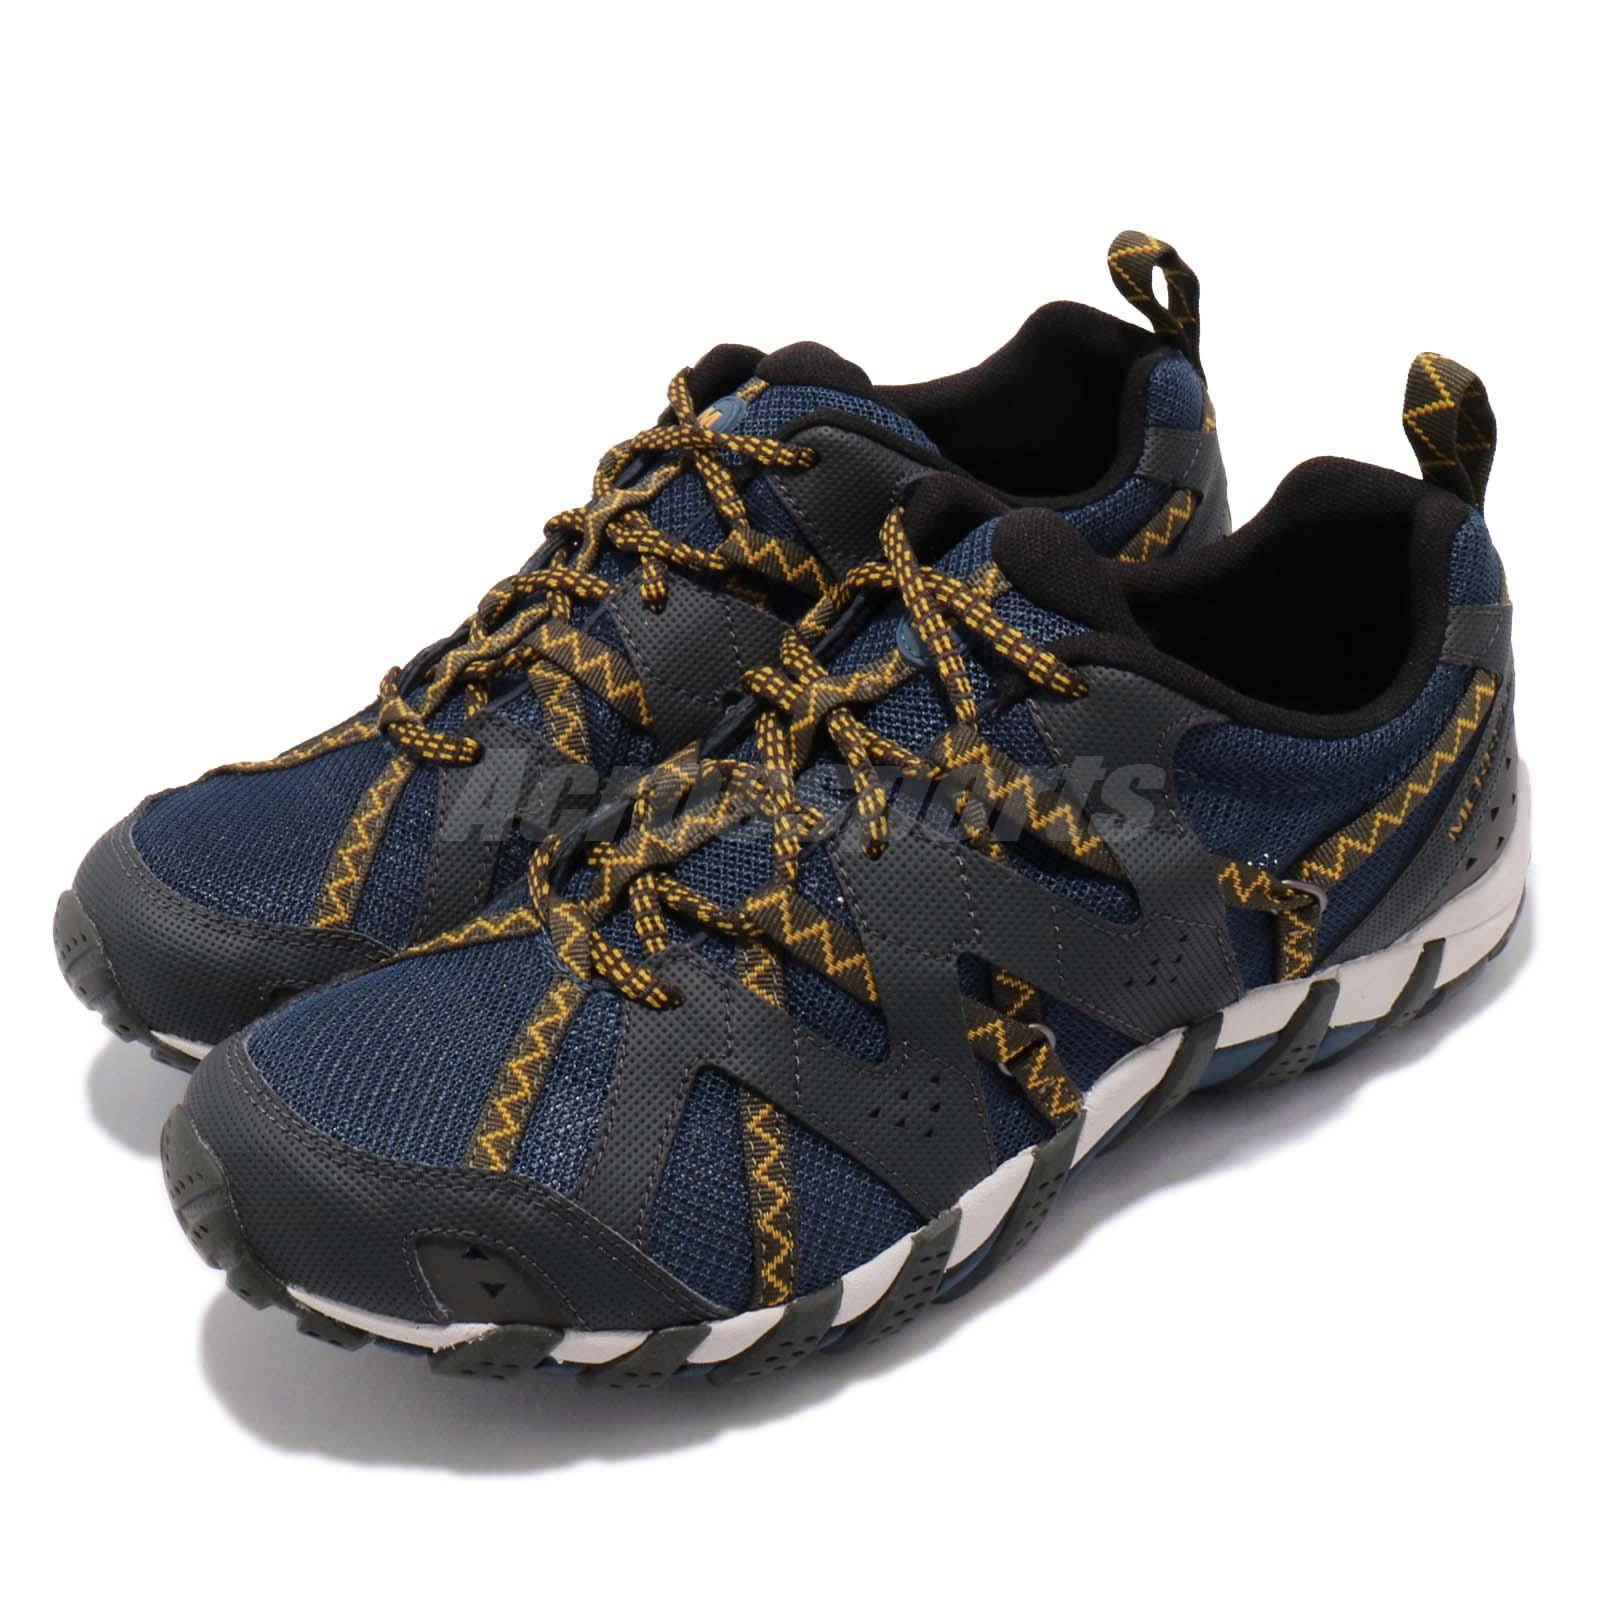 490391a99a22 Merrell Waterpro Maipo 2 Blue Wing Yellow White Men Outdoors Water ...